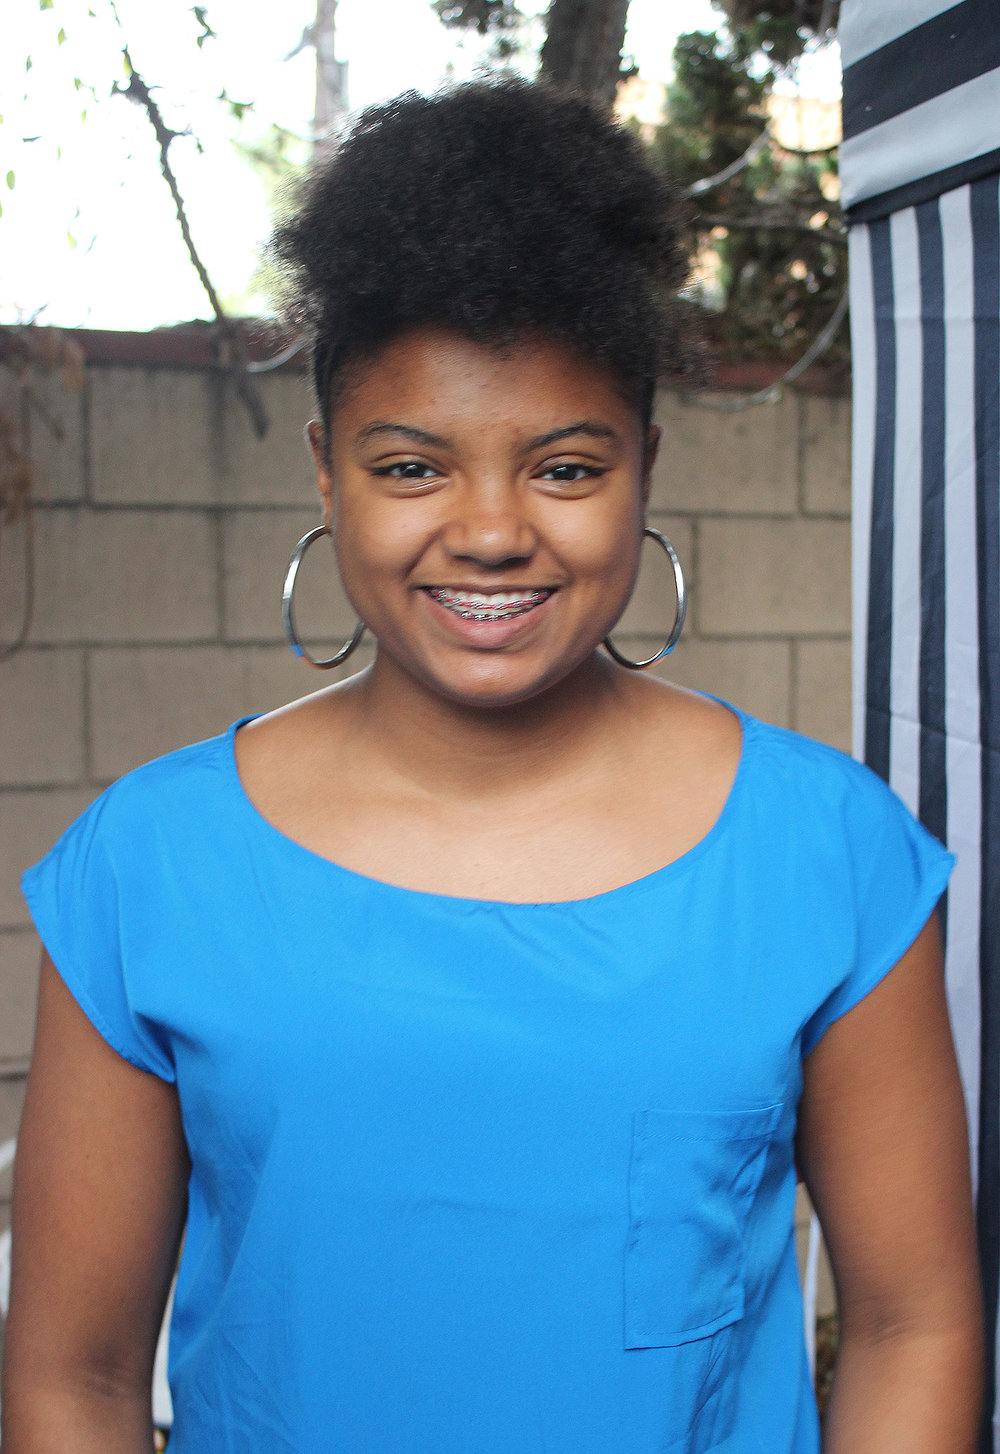 5,000 young people in Los Angeles age out of foster care every year. -